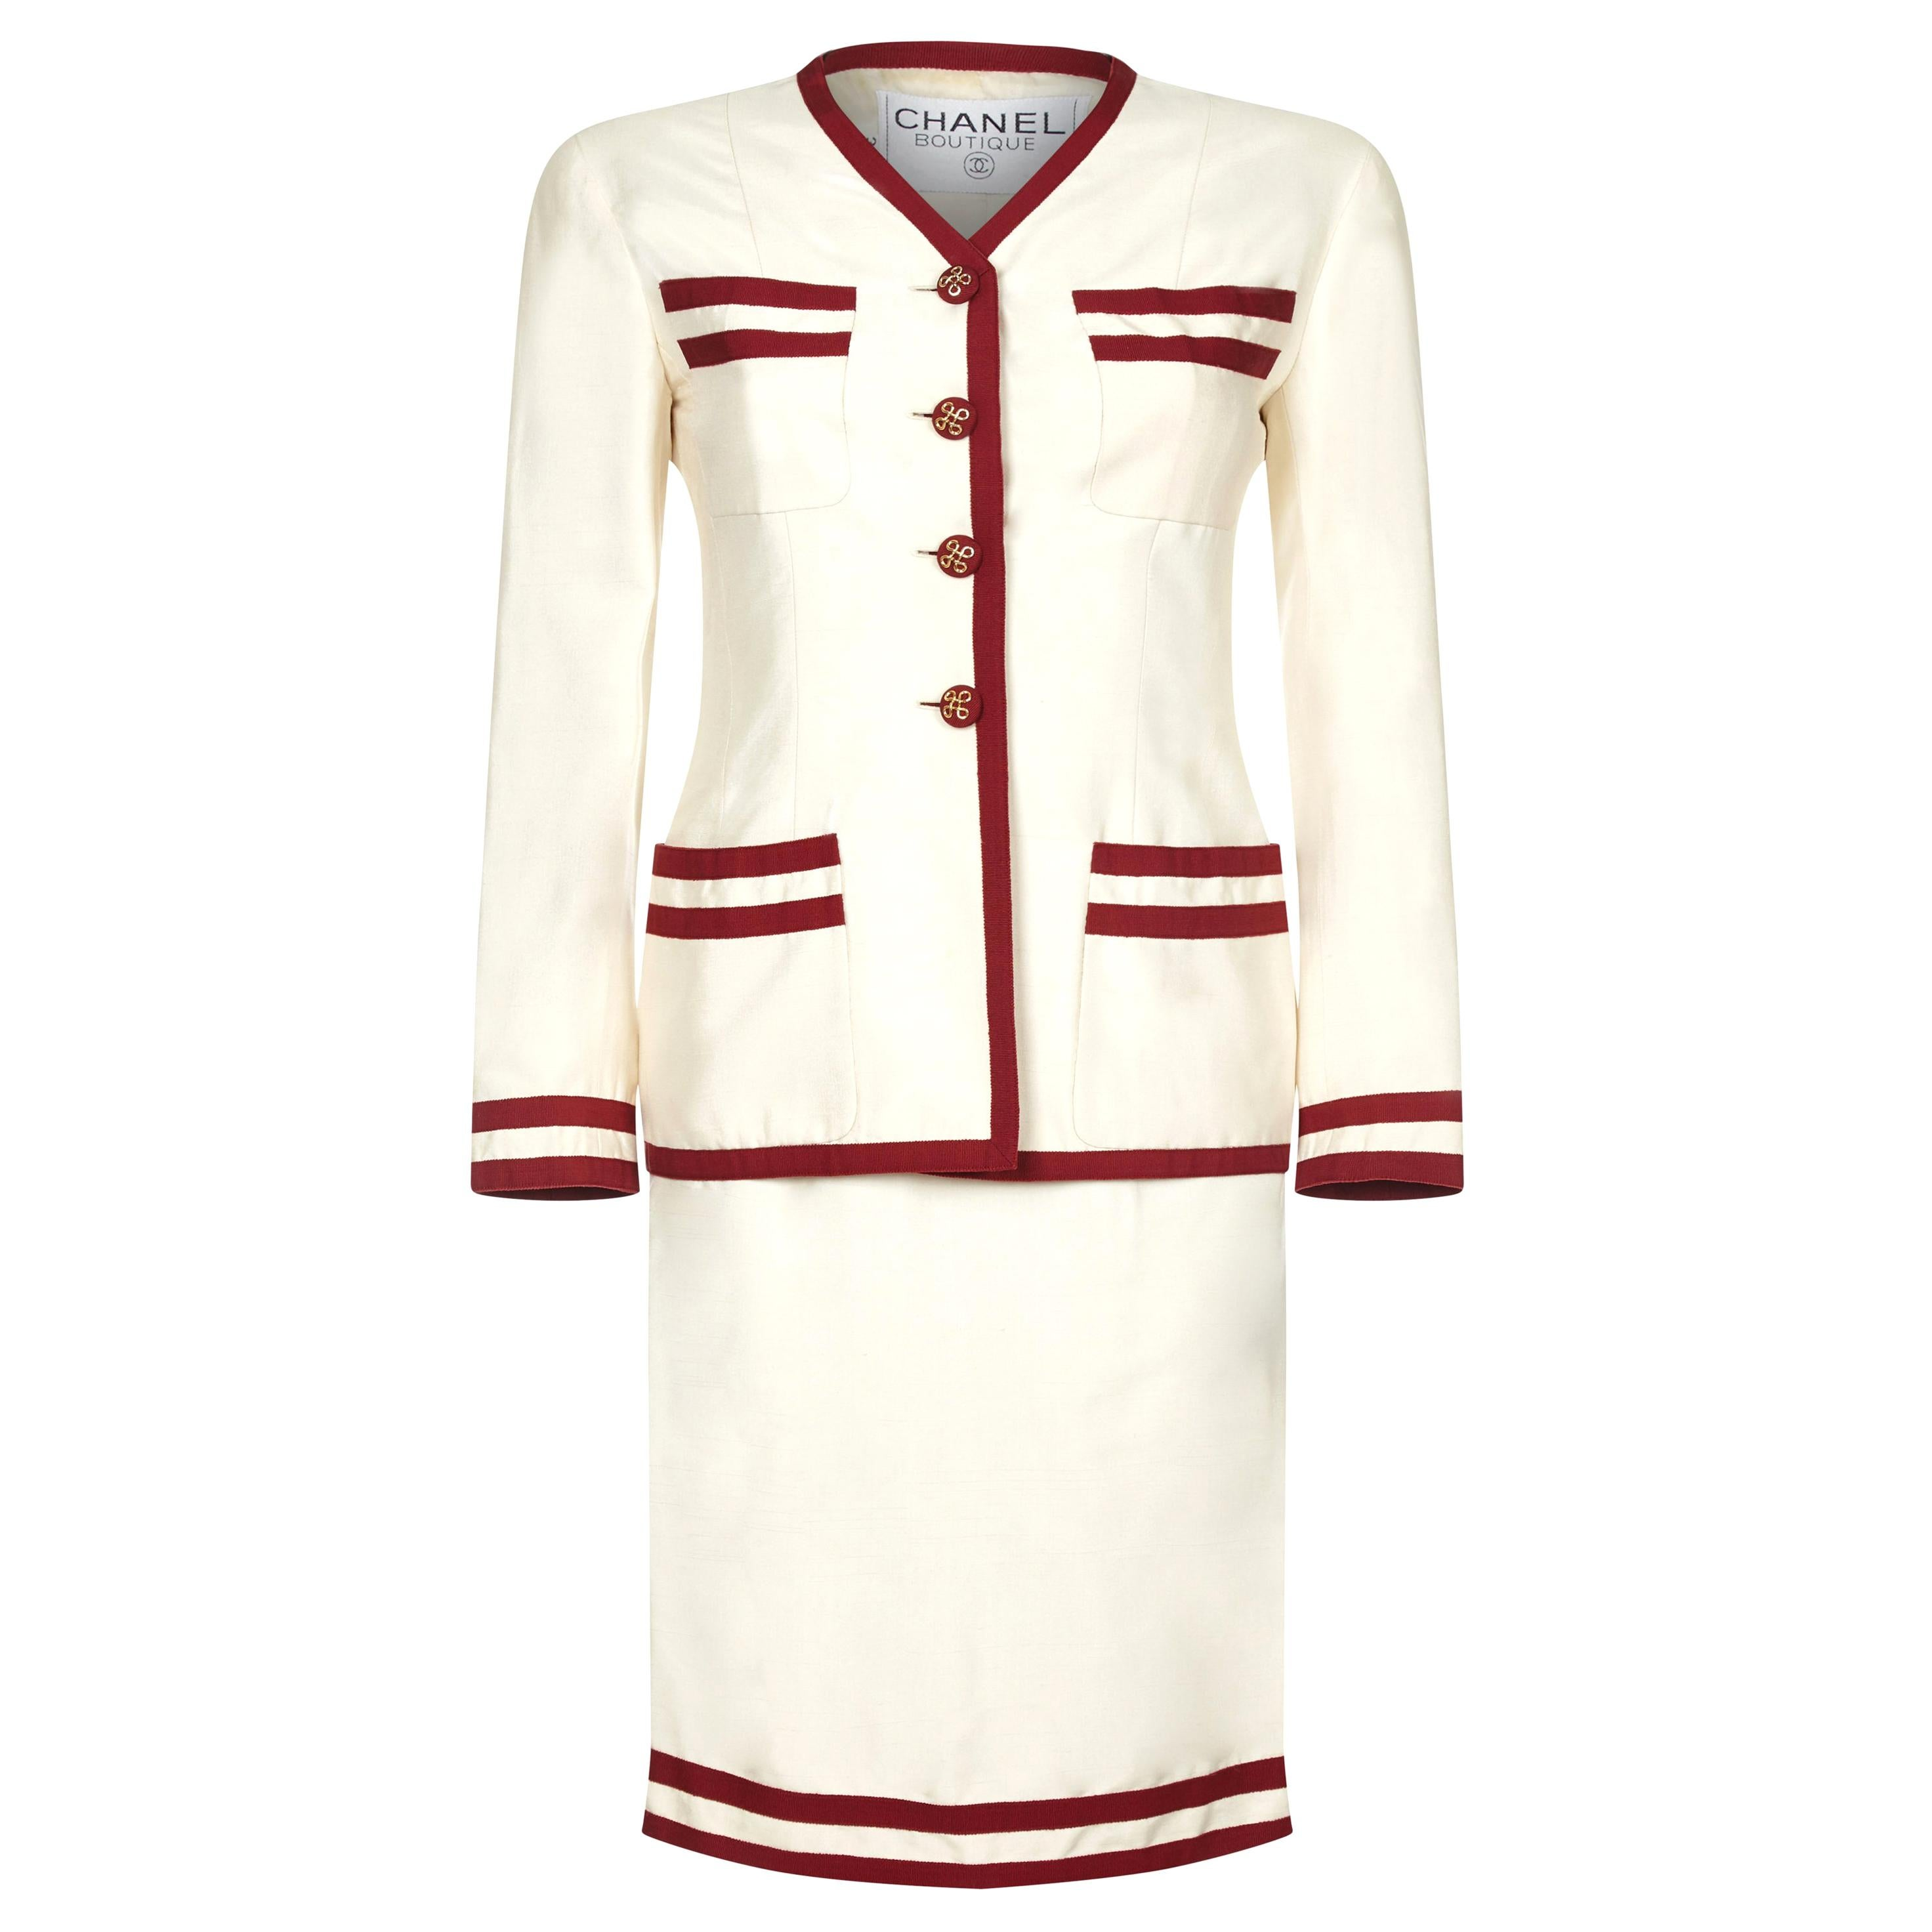 Chanel 1990s Cream Silk Suit with Red Ribbon Grosgrain Trim